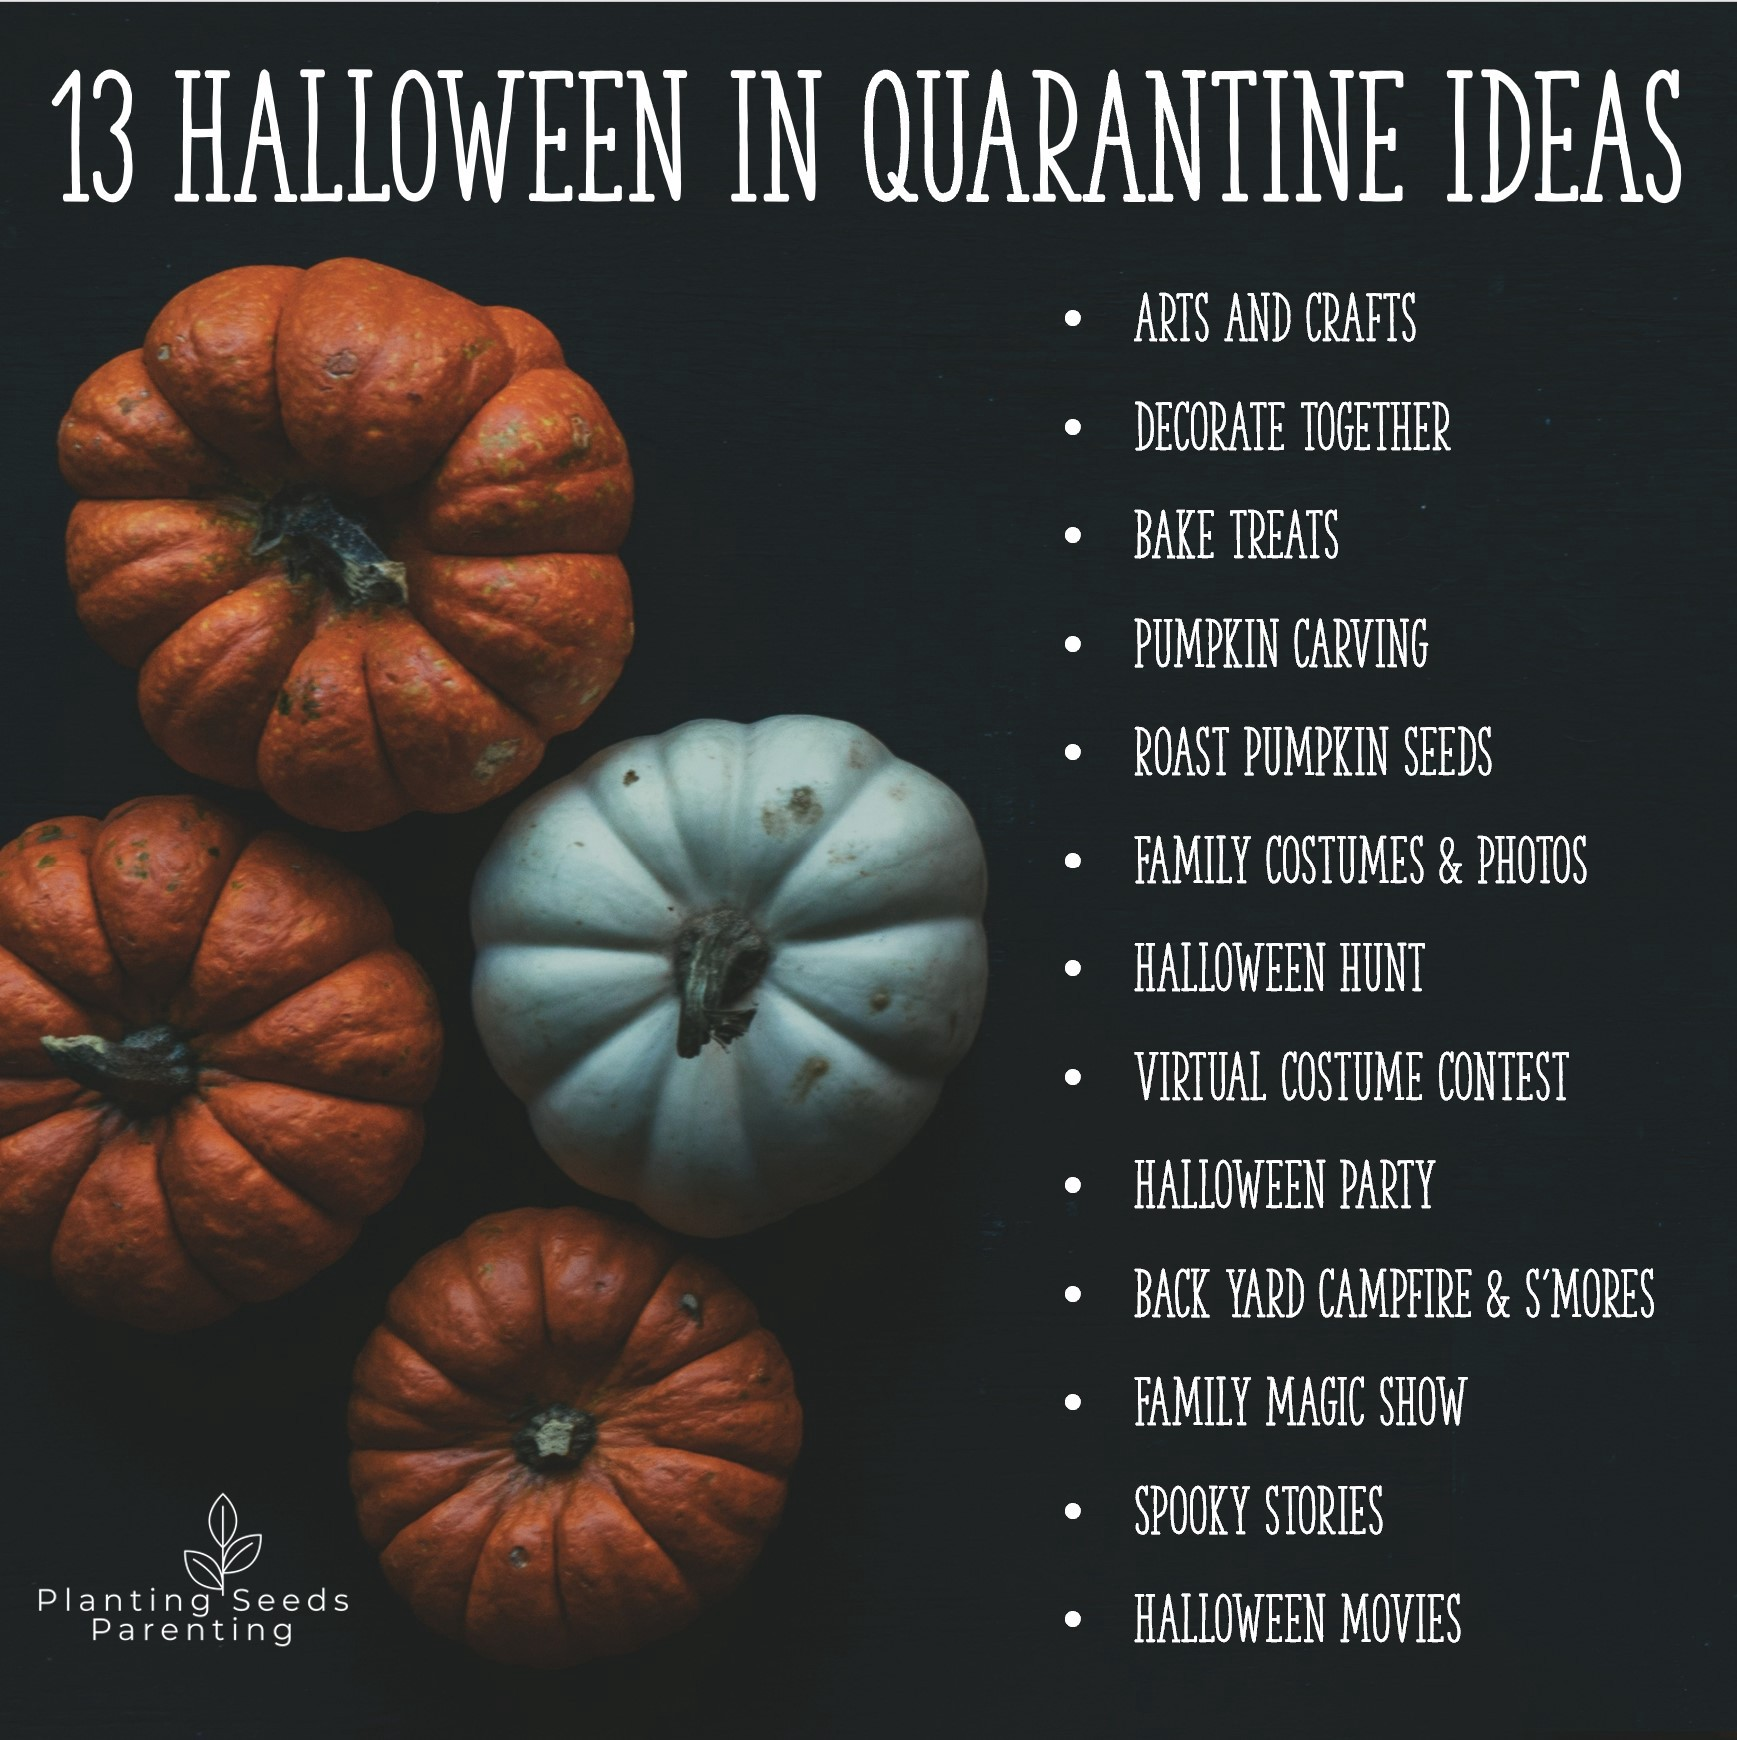 Halloween 2020 Parents Guide A Parent's Guide to Halloween in Quarantine: Creating a Sense of